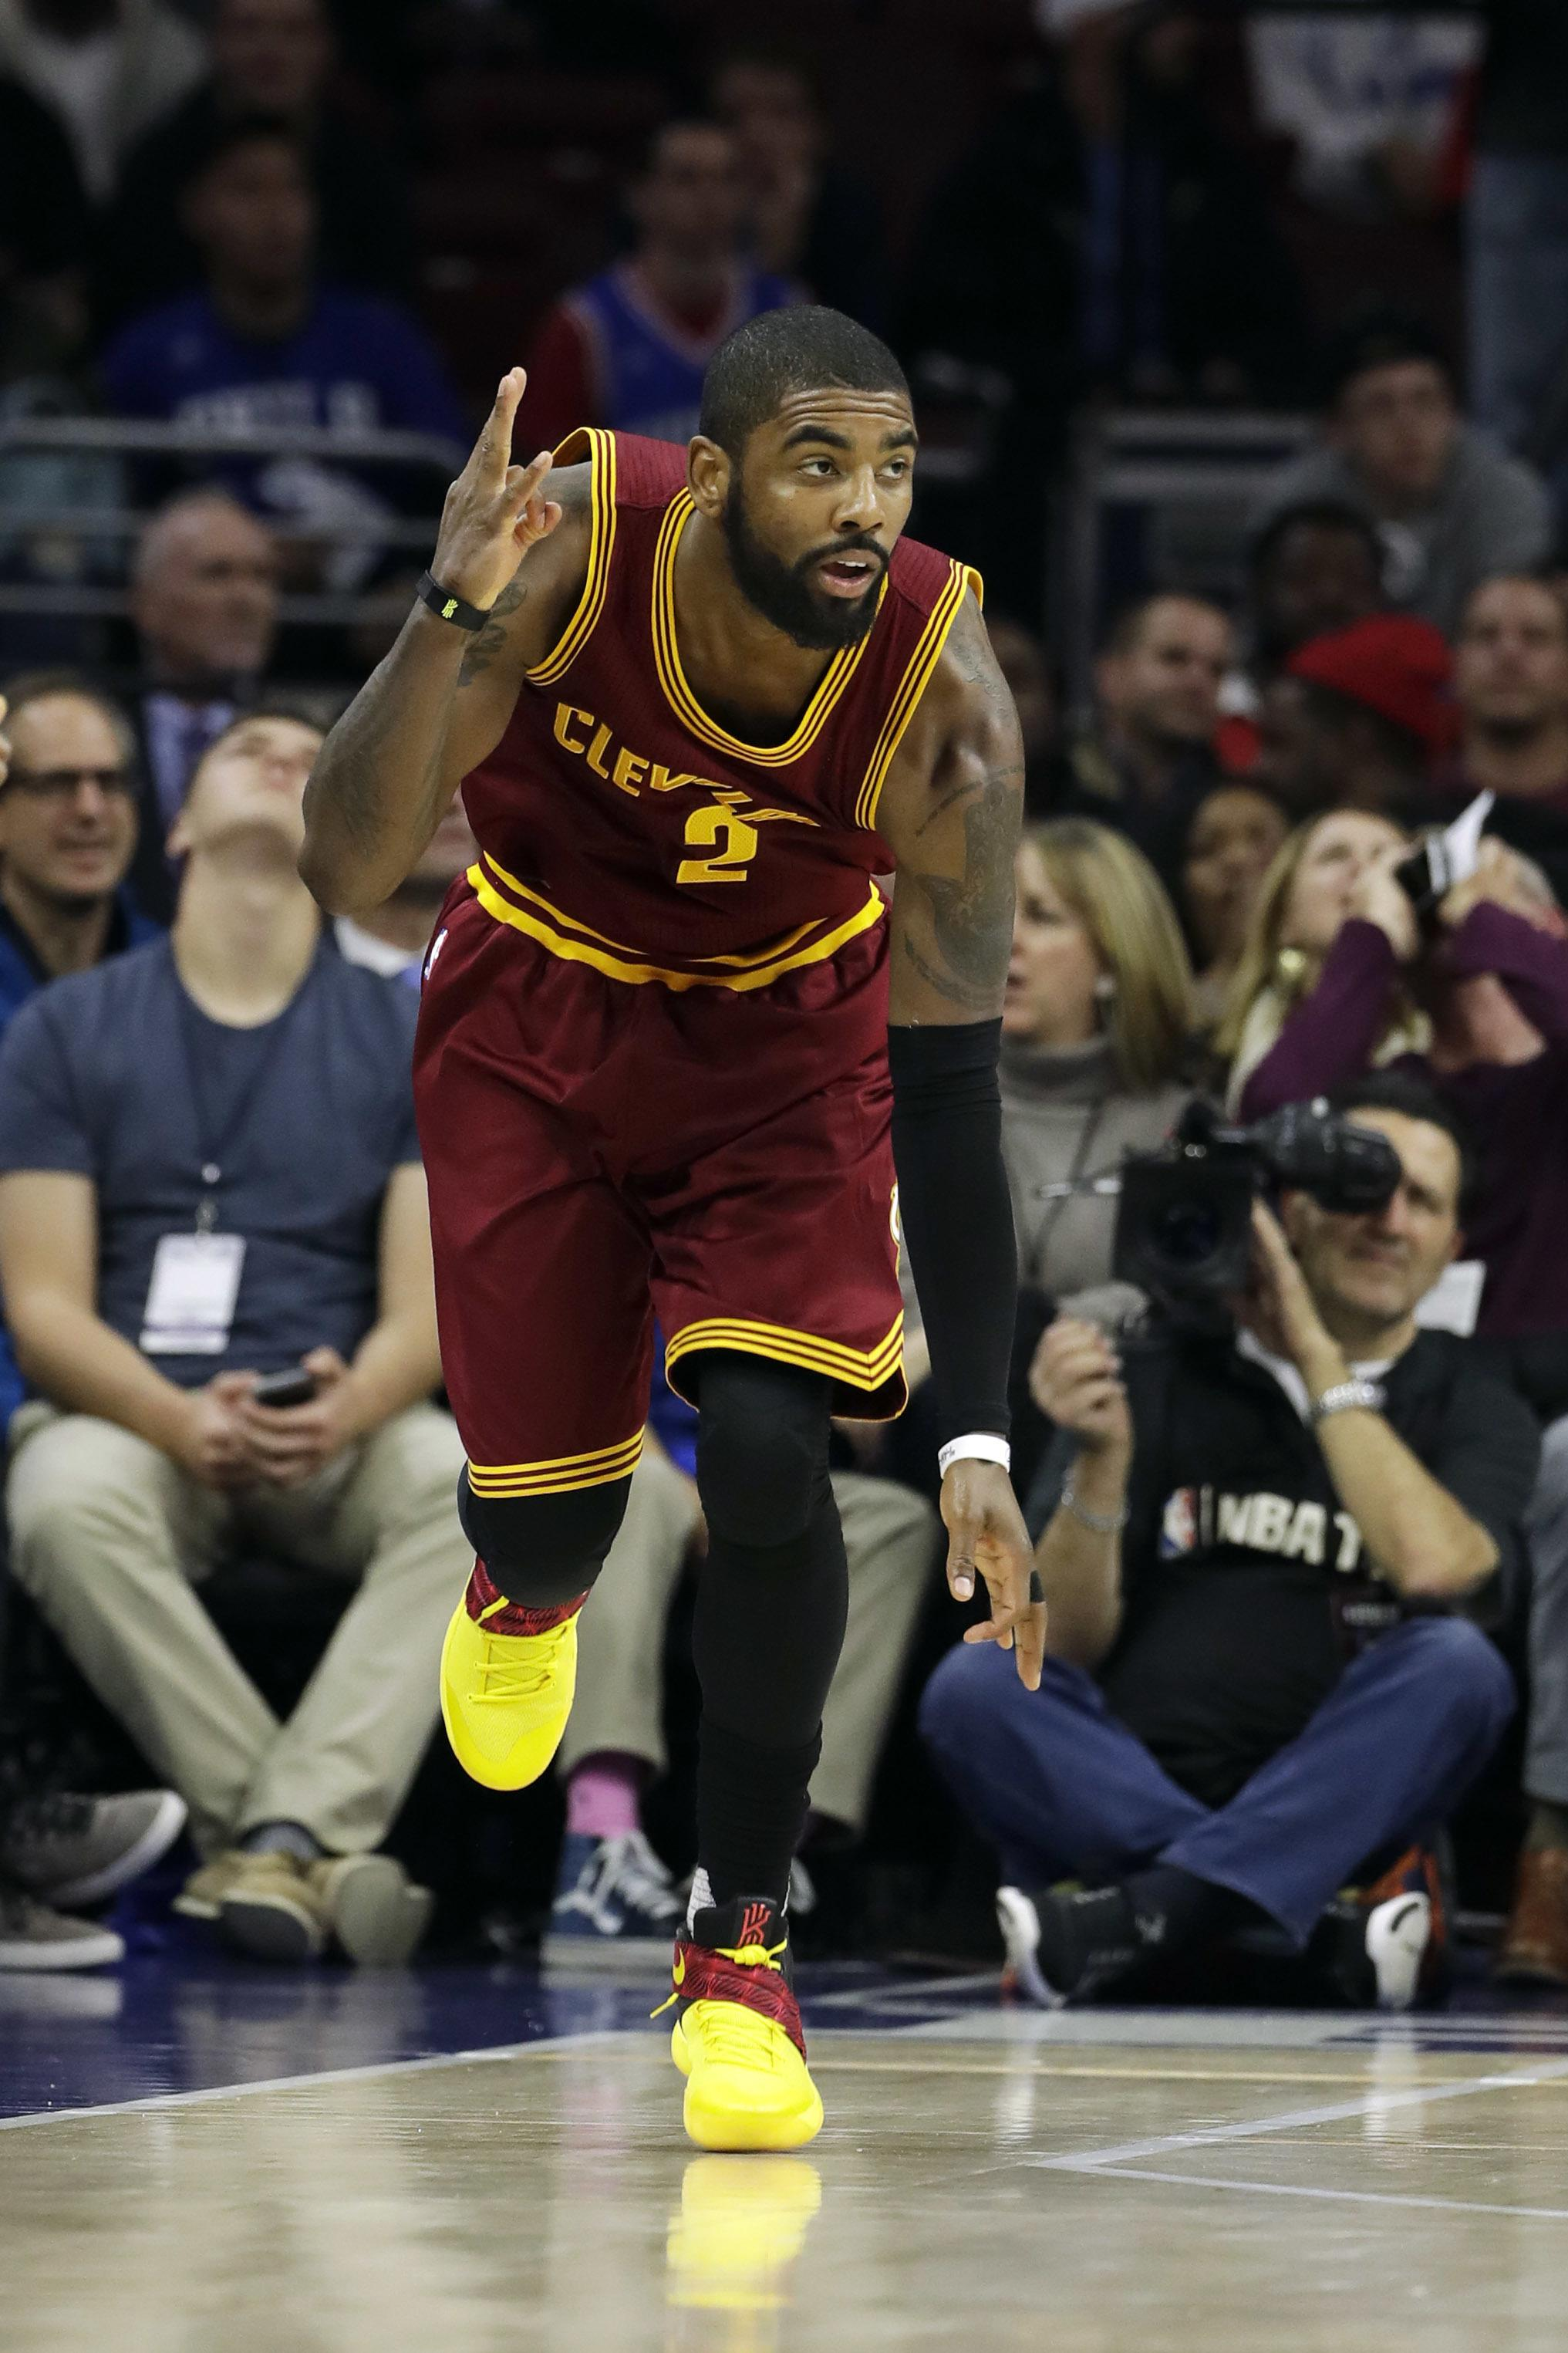 plus récent c5f0e a5879 NBA: Irving scores season-high 39 in Cavaliers' win   The ...